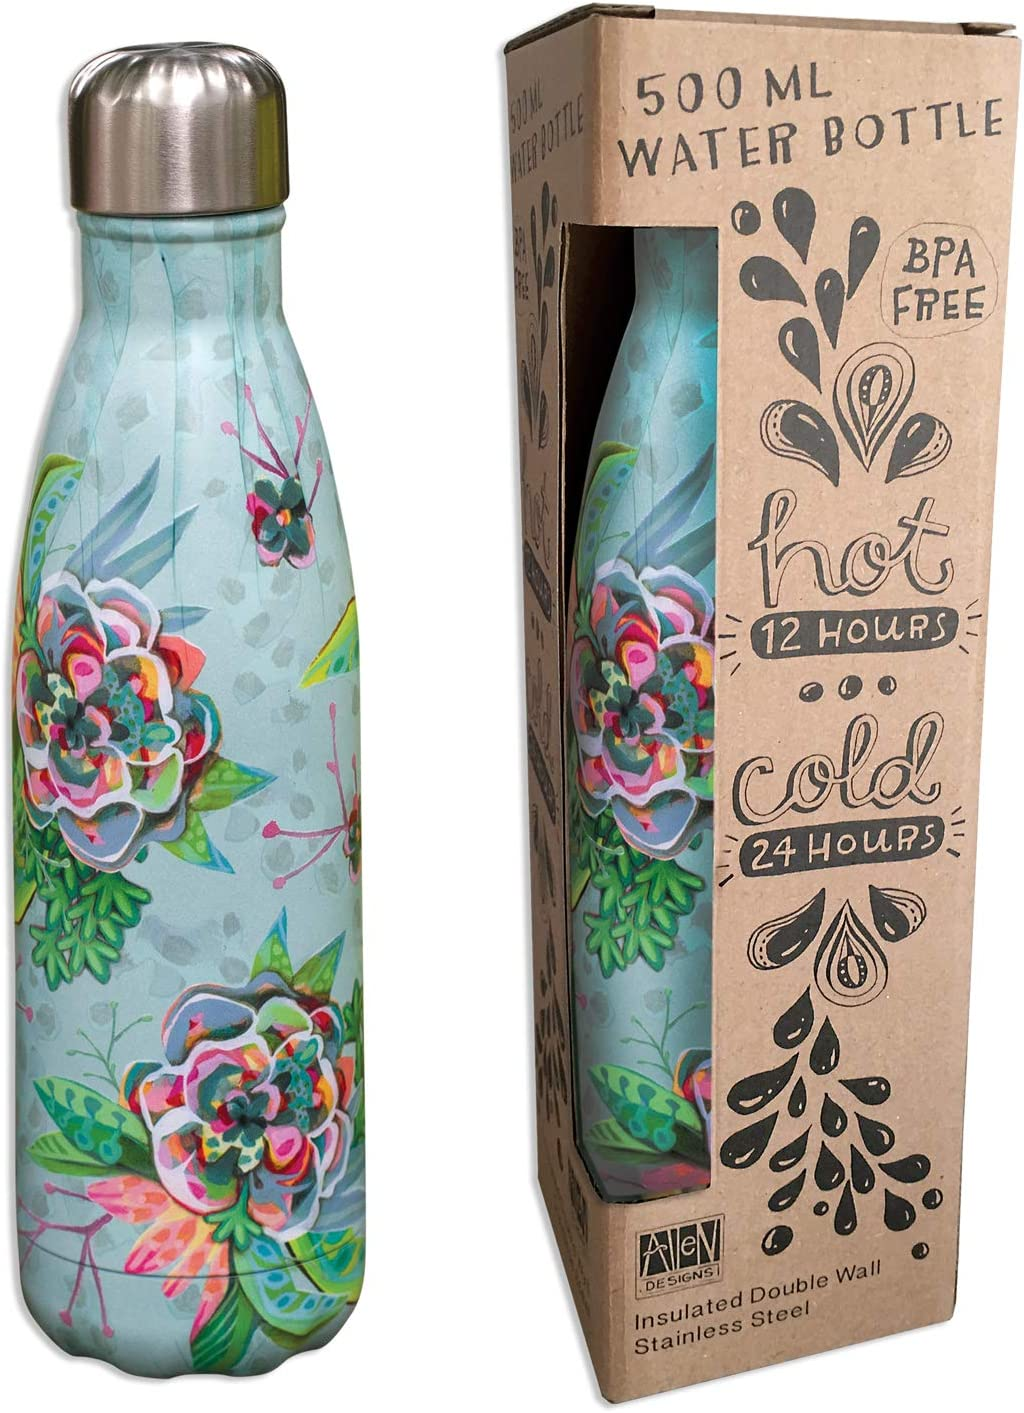 Allen Designs Stainless Steel Water Bottle 16.9 Ounces 10.25 Inches x 2.75 Inches